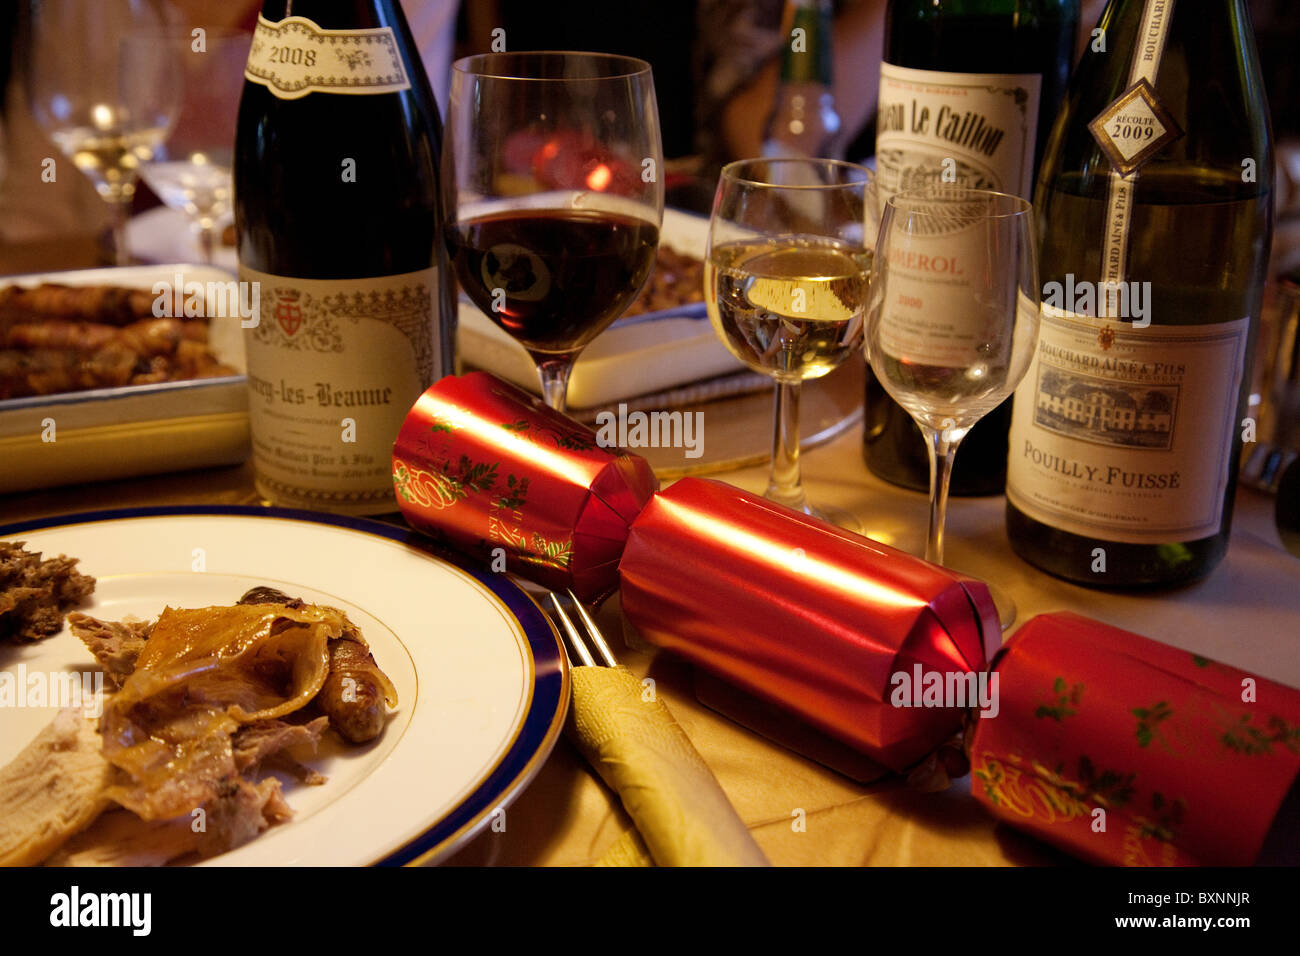 Christmas dinner table place setting with Xmas cracker and red and white wines, UK - Stock Image